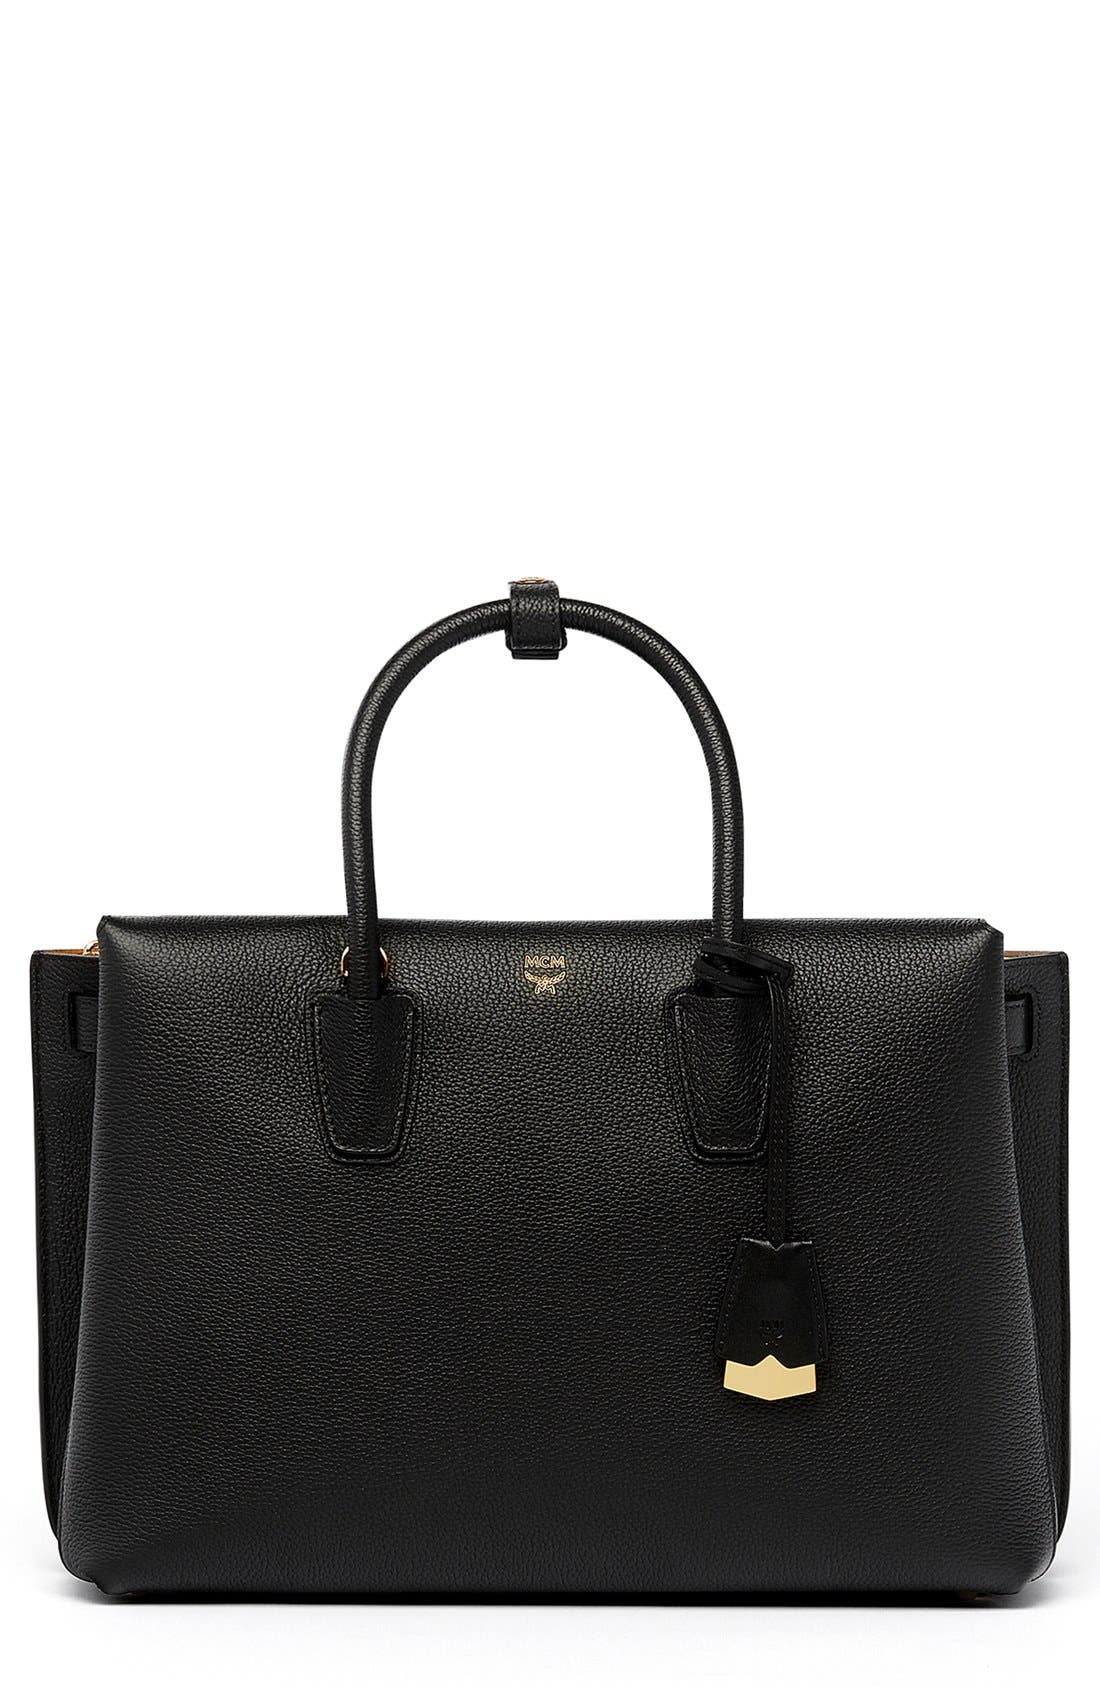 MCM 'Large Milla' Leather Tote